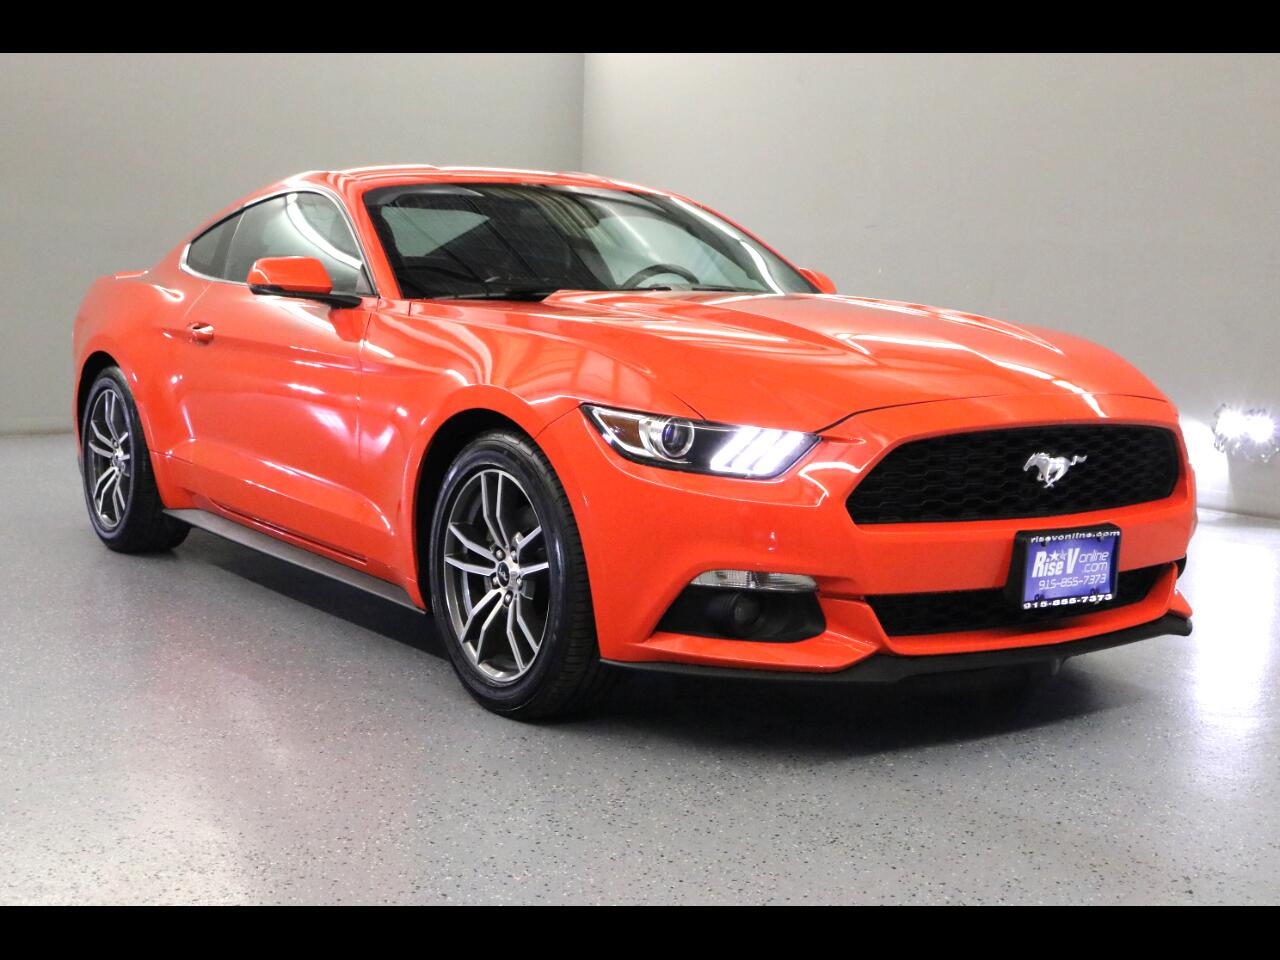 Ford Mustang 2dr Fastback EcoBoost Premium 2016